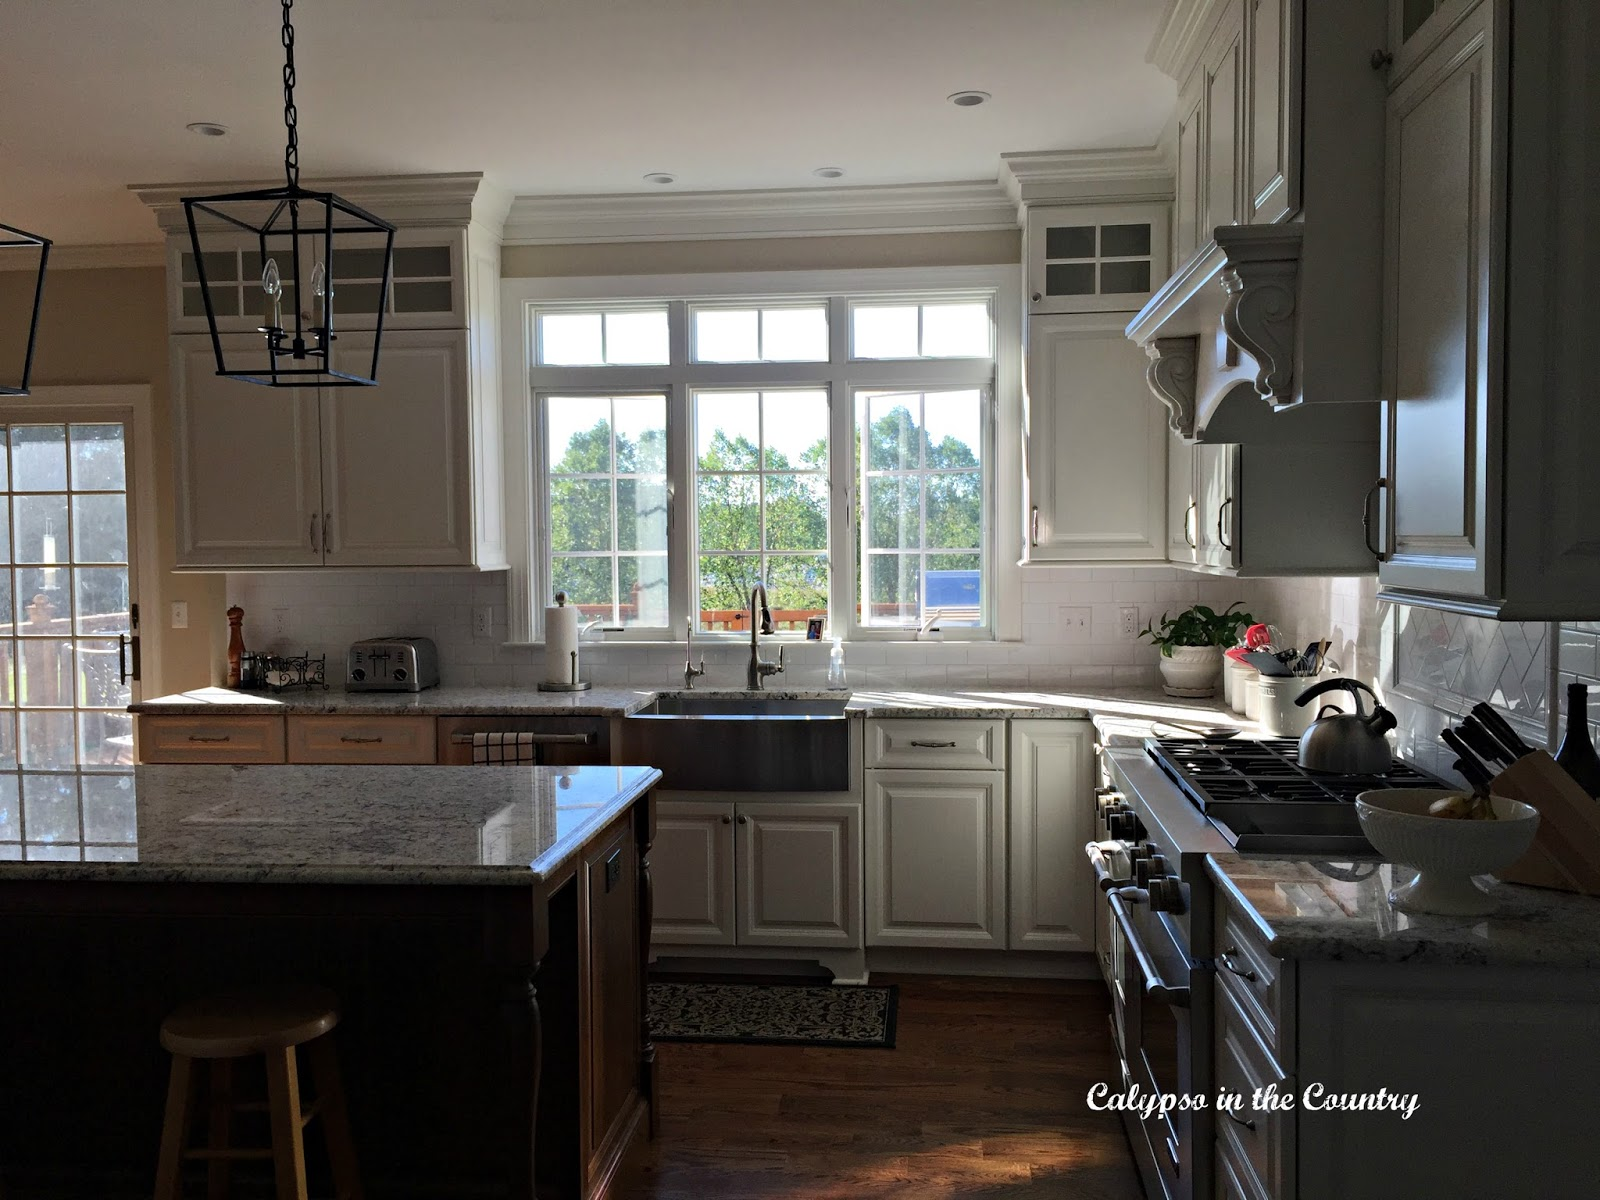 calypso in the country counter stool dilemma another combination would be to go with white counter stools like these constance stools from ballard ballard designs